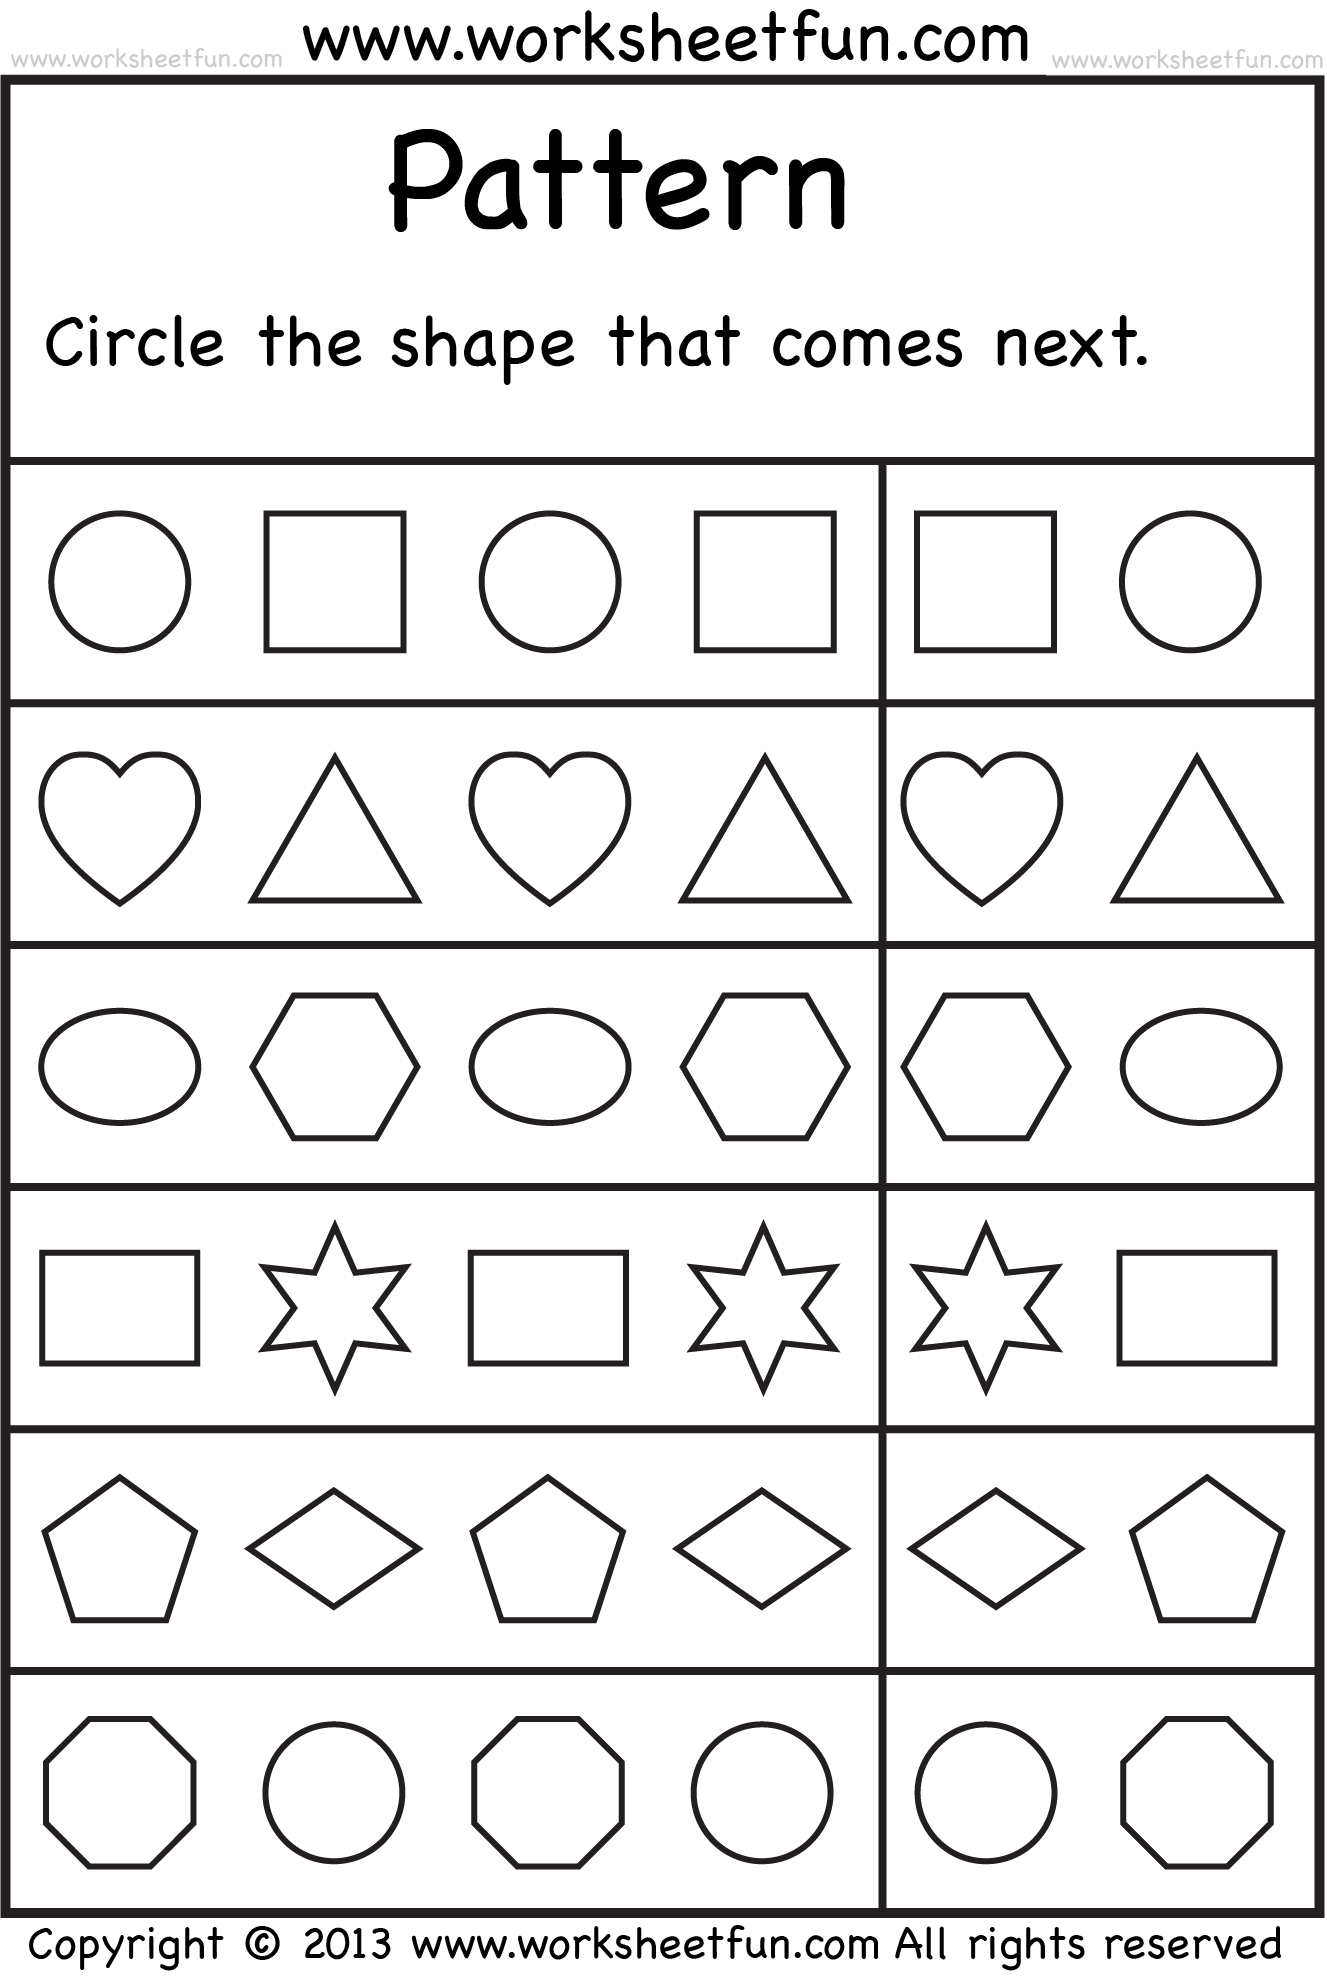 Worksheets Free Kindergarten Worksheets free printable worksheets worksheetfun 8 best images of patterns preschool shape pattern kindergarten patter